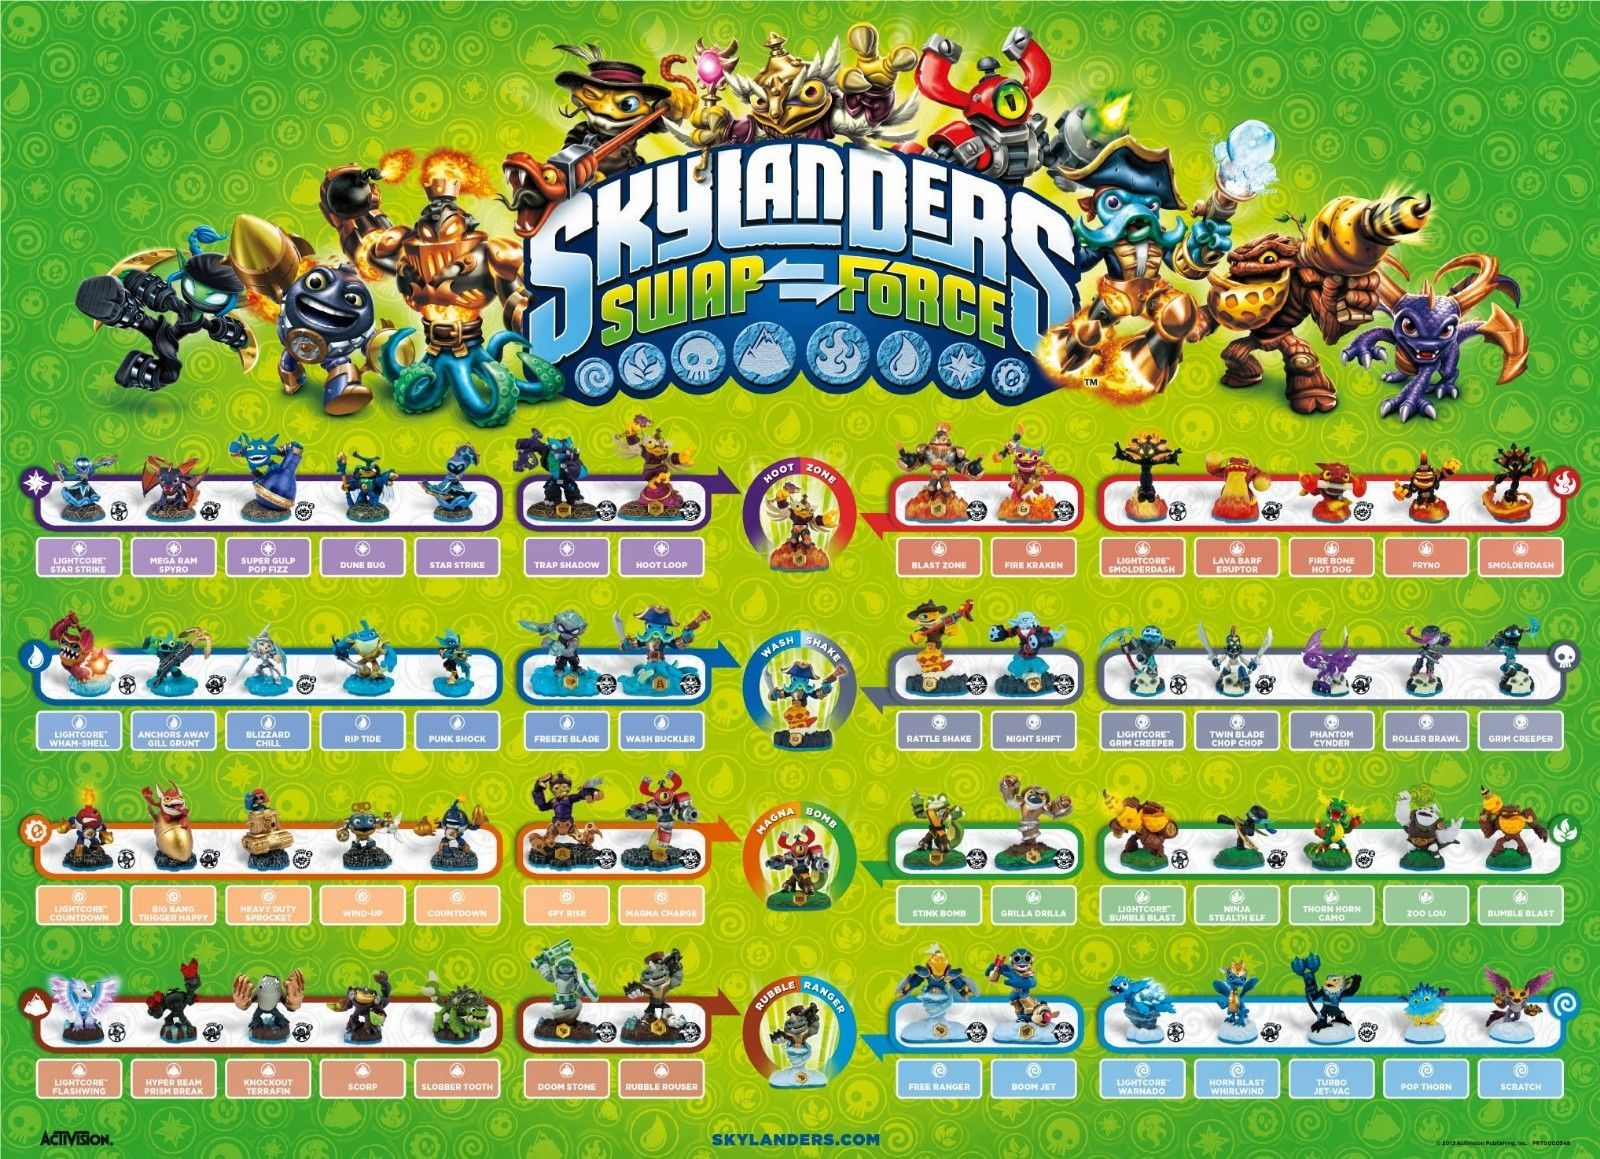 $3.49 - Skylanders Swap Force Character Map Poster Original ... on dora the explorer map, iron man map, sesame street map, batman map, my little pony map, epic mickey map, maplestory map, angry birds map, princess map, world of warcraft map, the simpsons map, adventure time map, call of duty map, star trek map, need for speed map, portal map, winnie the pooh map, assassins creed map, doctor who map, hello kitty map,